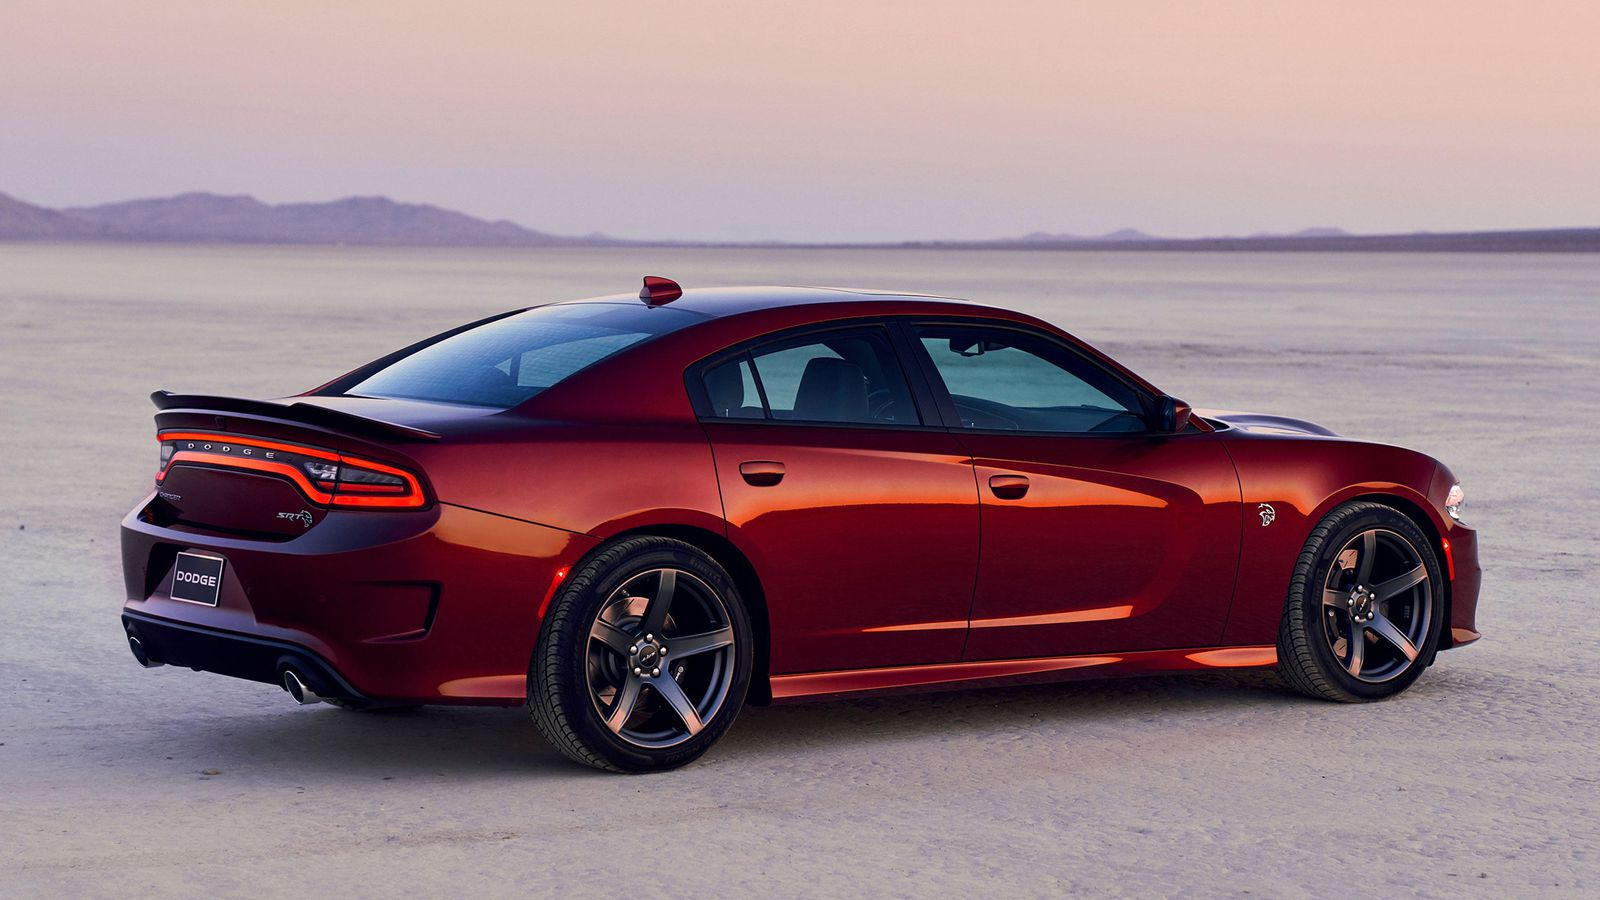 33 Best 2019 Dodge Charger Srt8 Hellcat Performance and New Engine